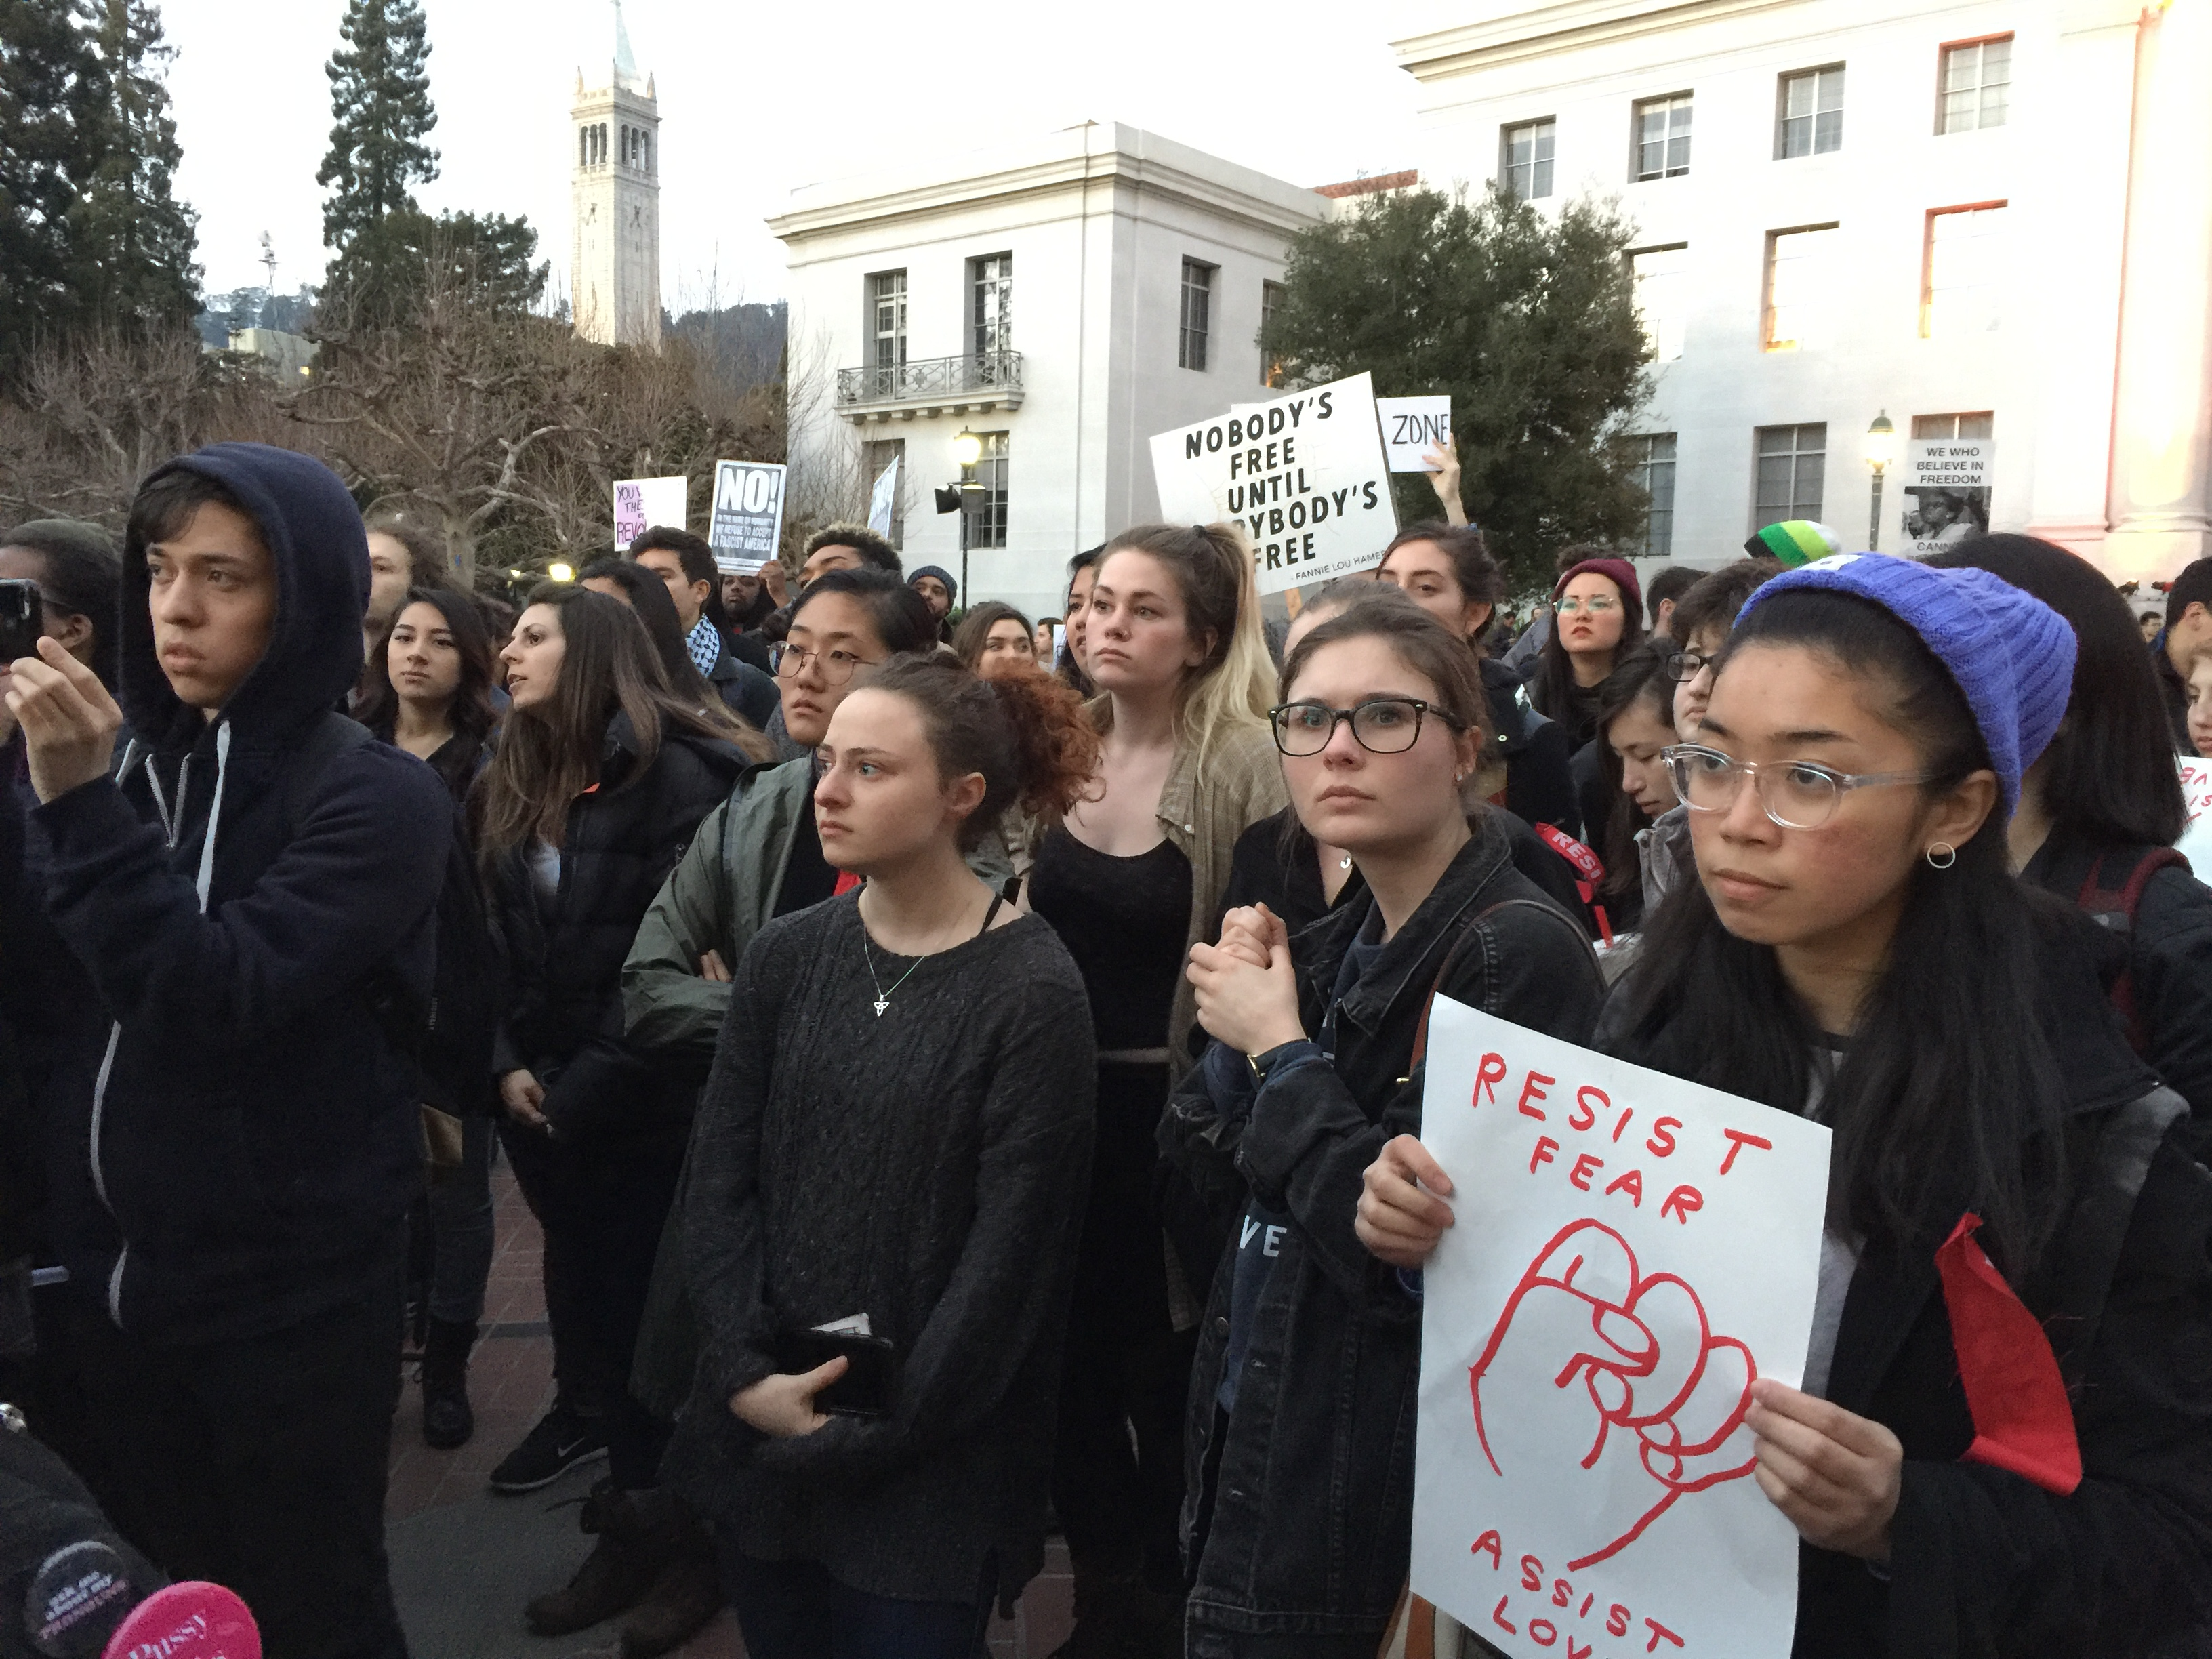 Thousands of students protested on Feb. 1, 2017 at the University of California-Berkeley against Milo Yiannopoulos' aim to begin a campaign against allowing the University to continue as a sanctuary campus that protests immigrant students.